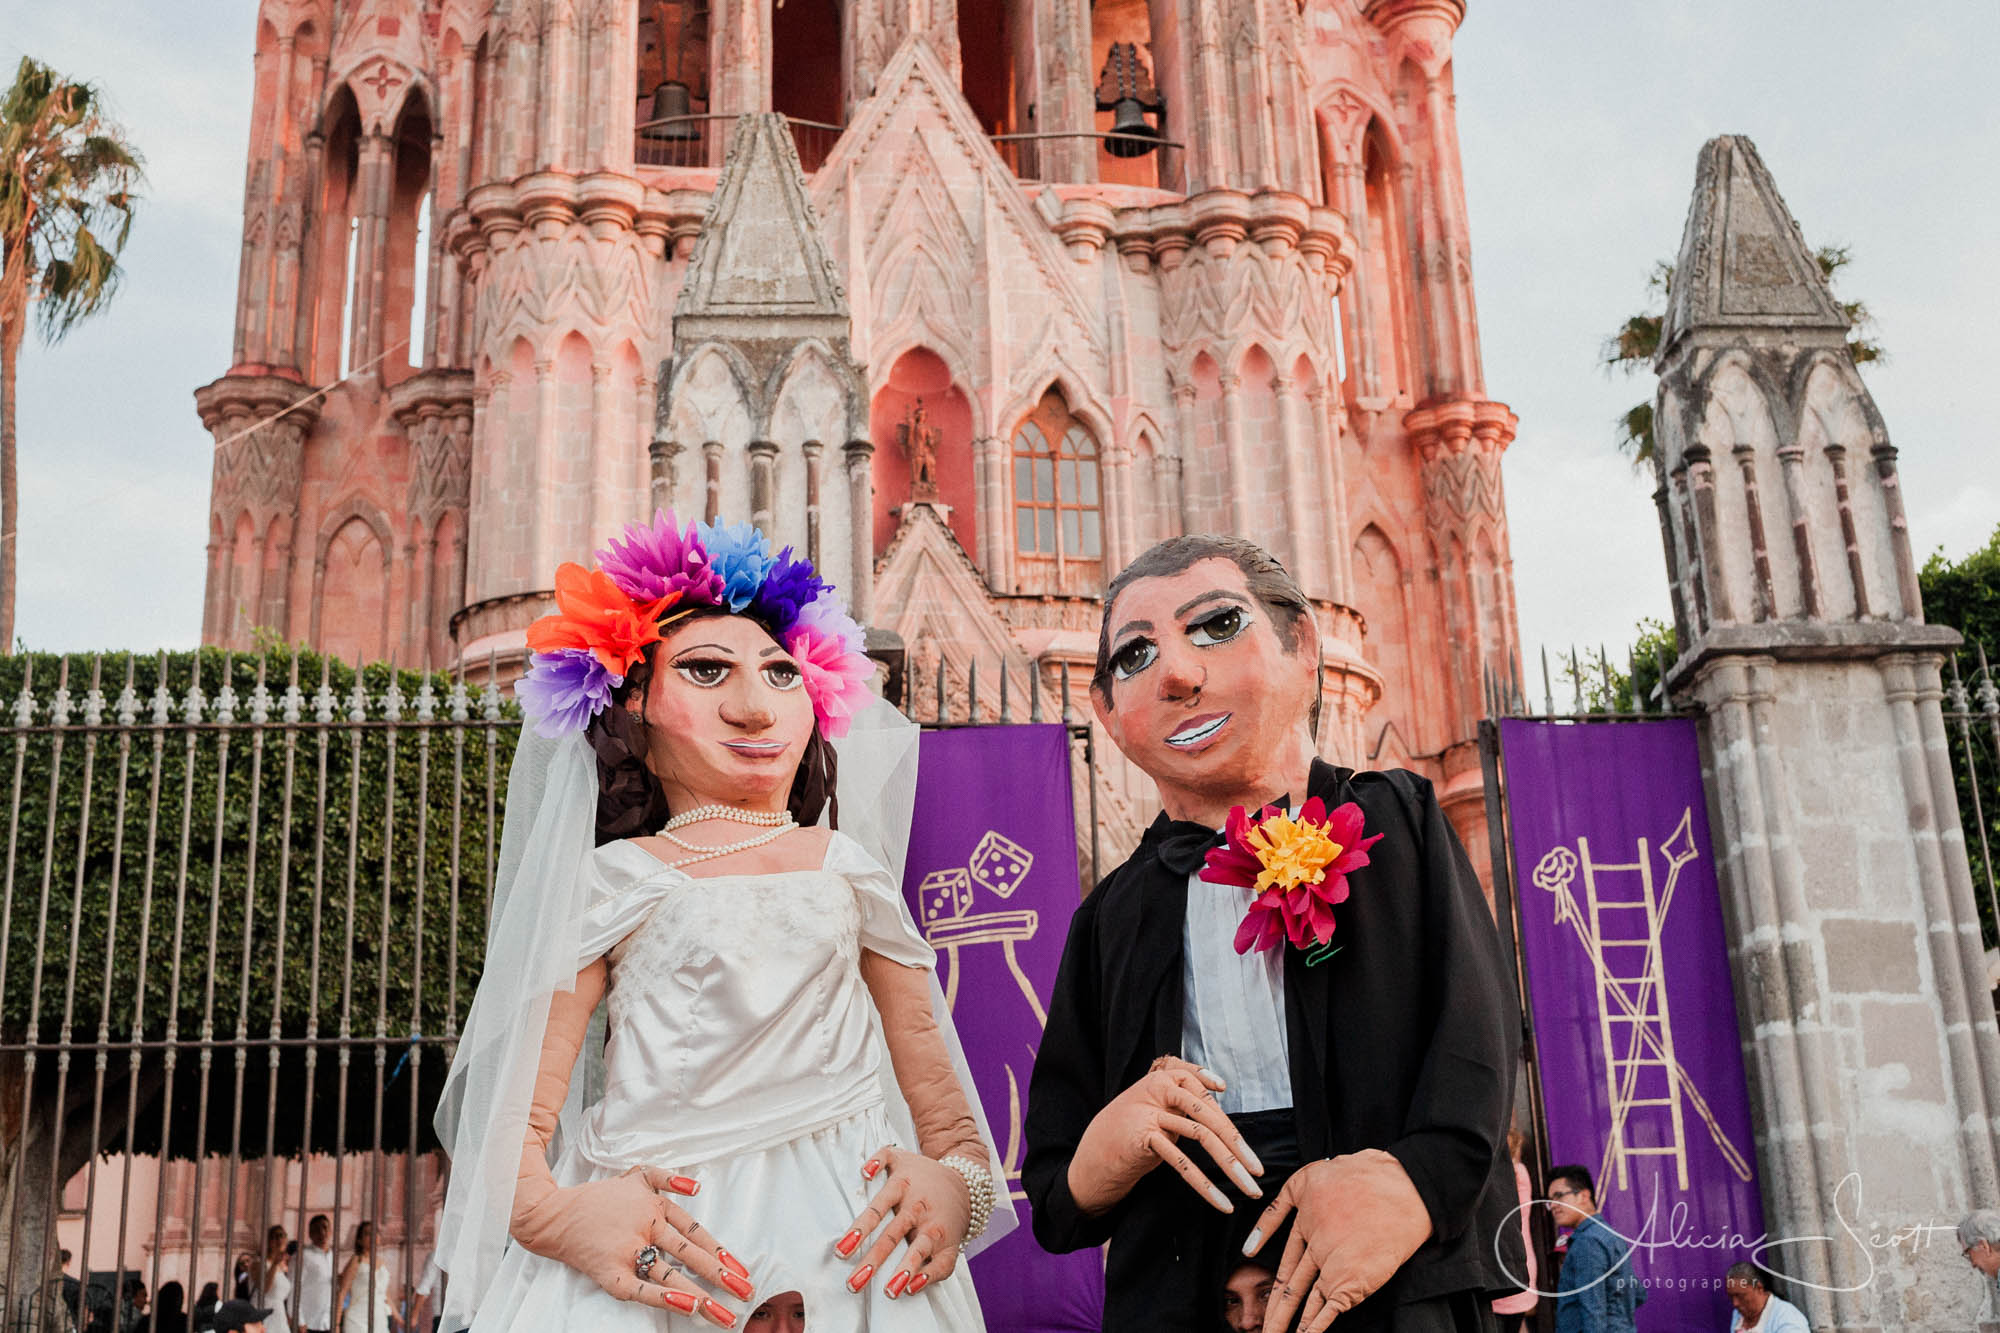 Bride and groom mojiganga puppets outside La Parroquia in San Miguel Allende